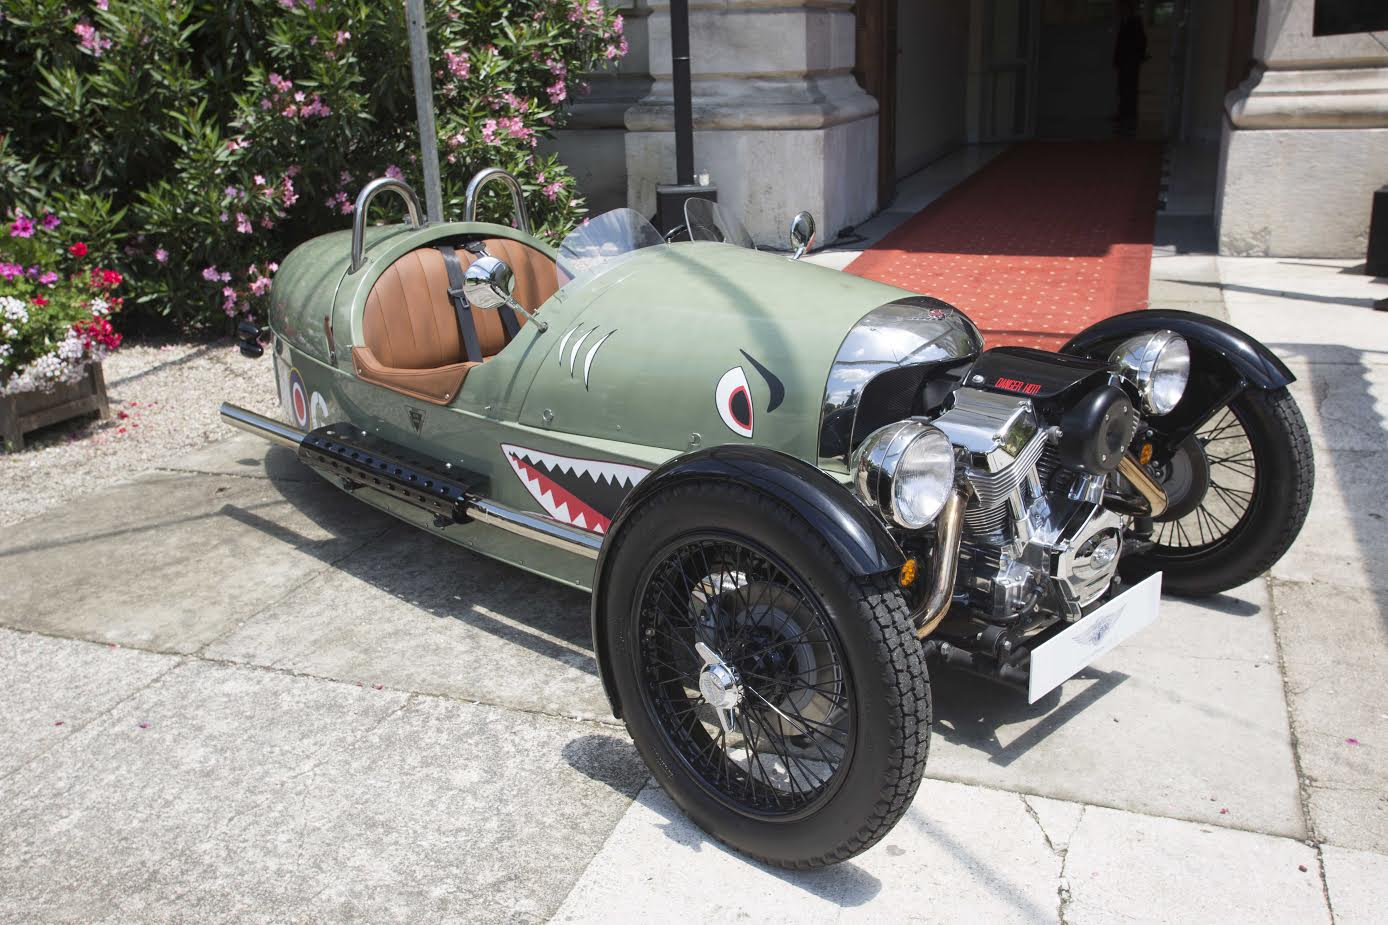 Morgan 3 wheeler, Türkiye